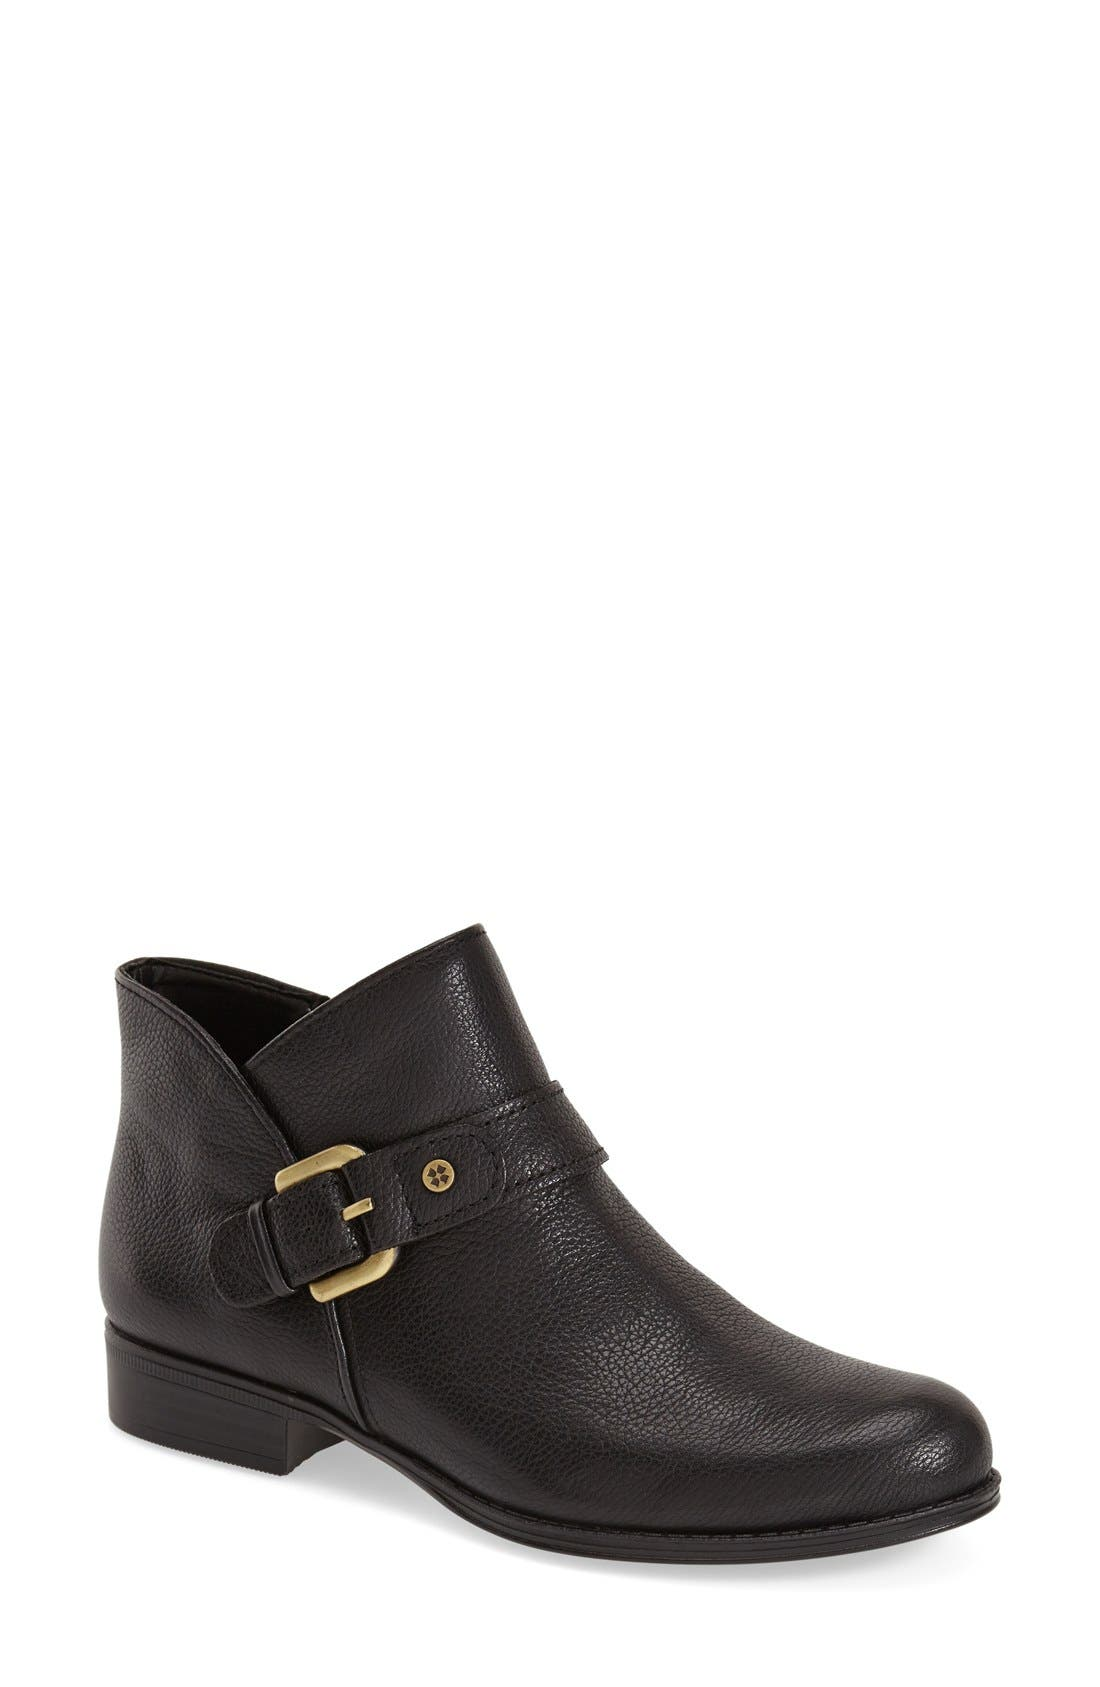 Alternate Image 1 Selected - Naturalizer 'Jarrett' Buckle Bootie (Women)